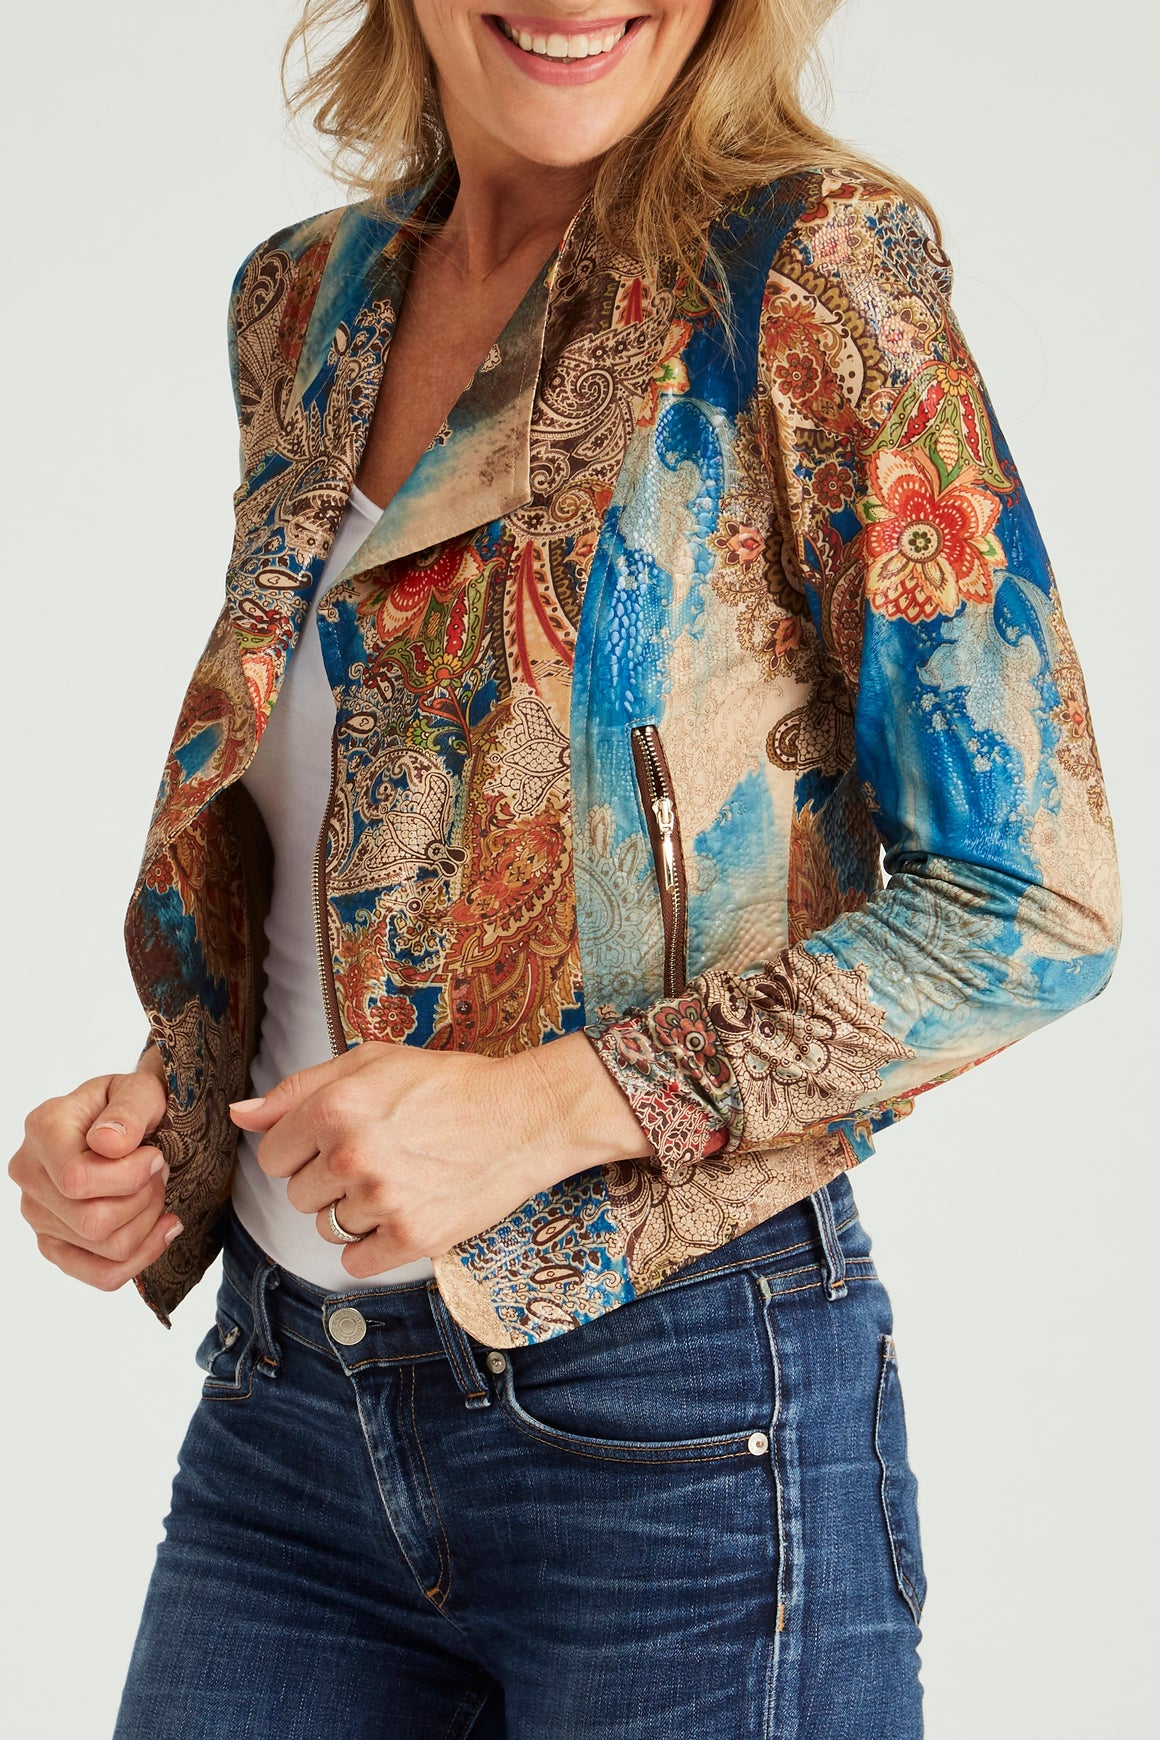 The Little Diva Jacket - French Paisley